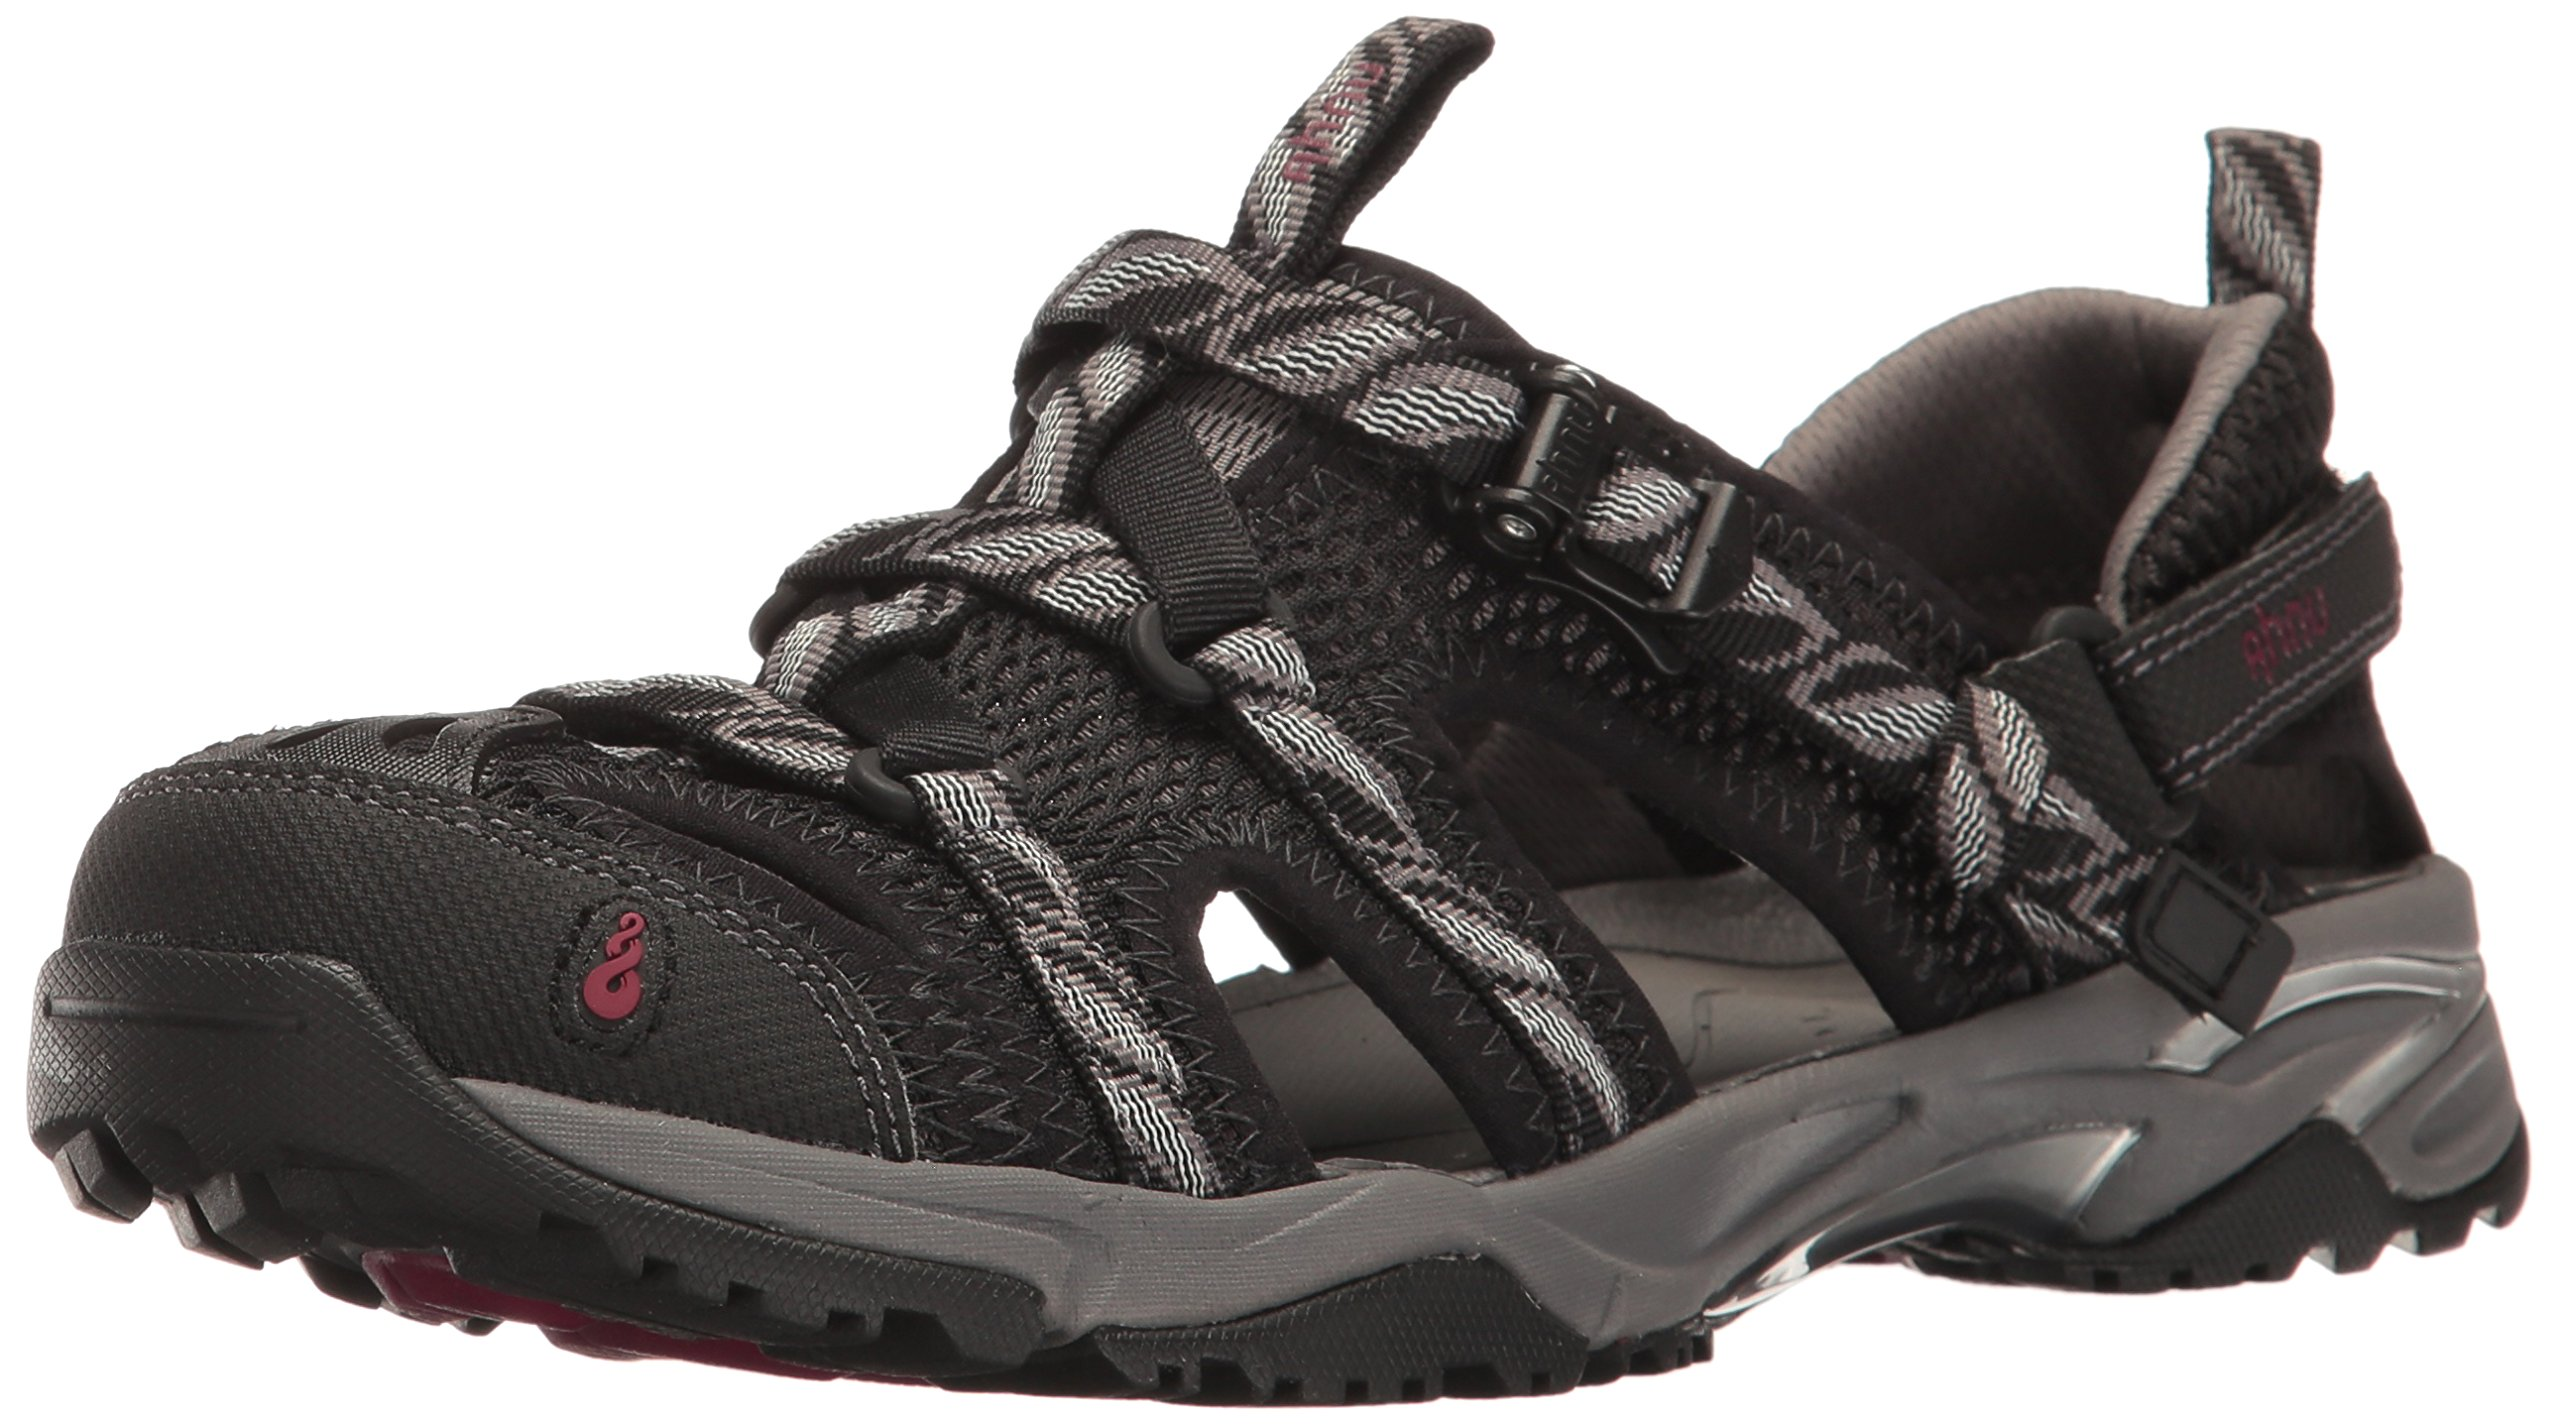 Ahnu Women's W Tilden V Athletic Sandal, Black, 6.5 M US